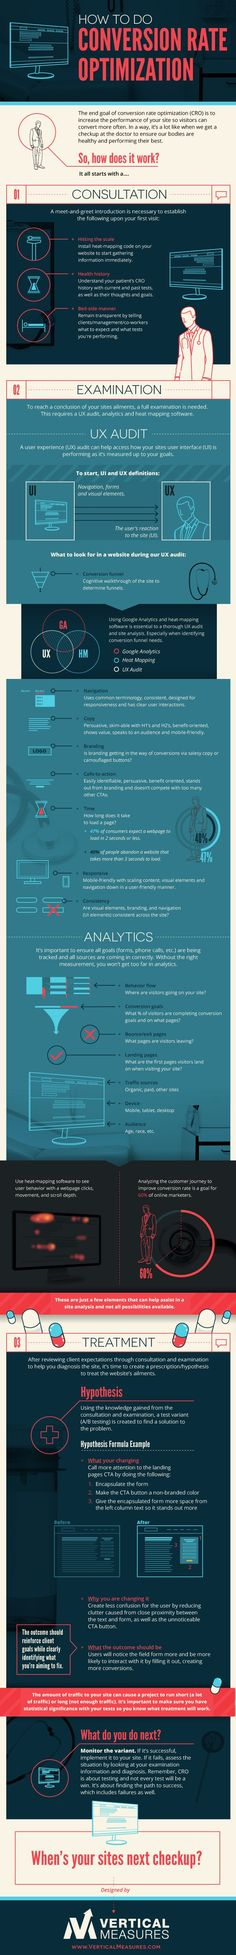 How To Do Conversion Rate Optimization - #infographic